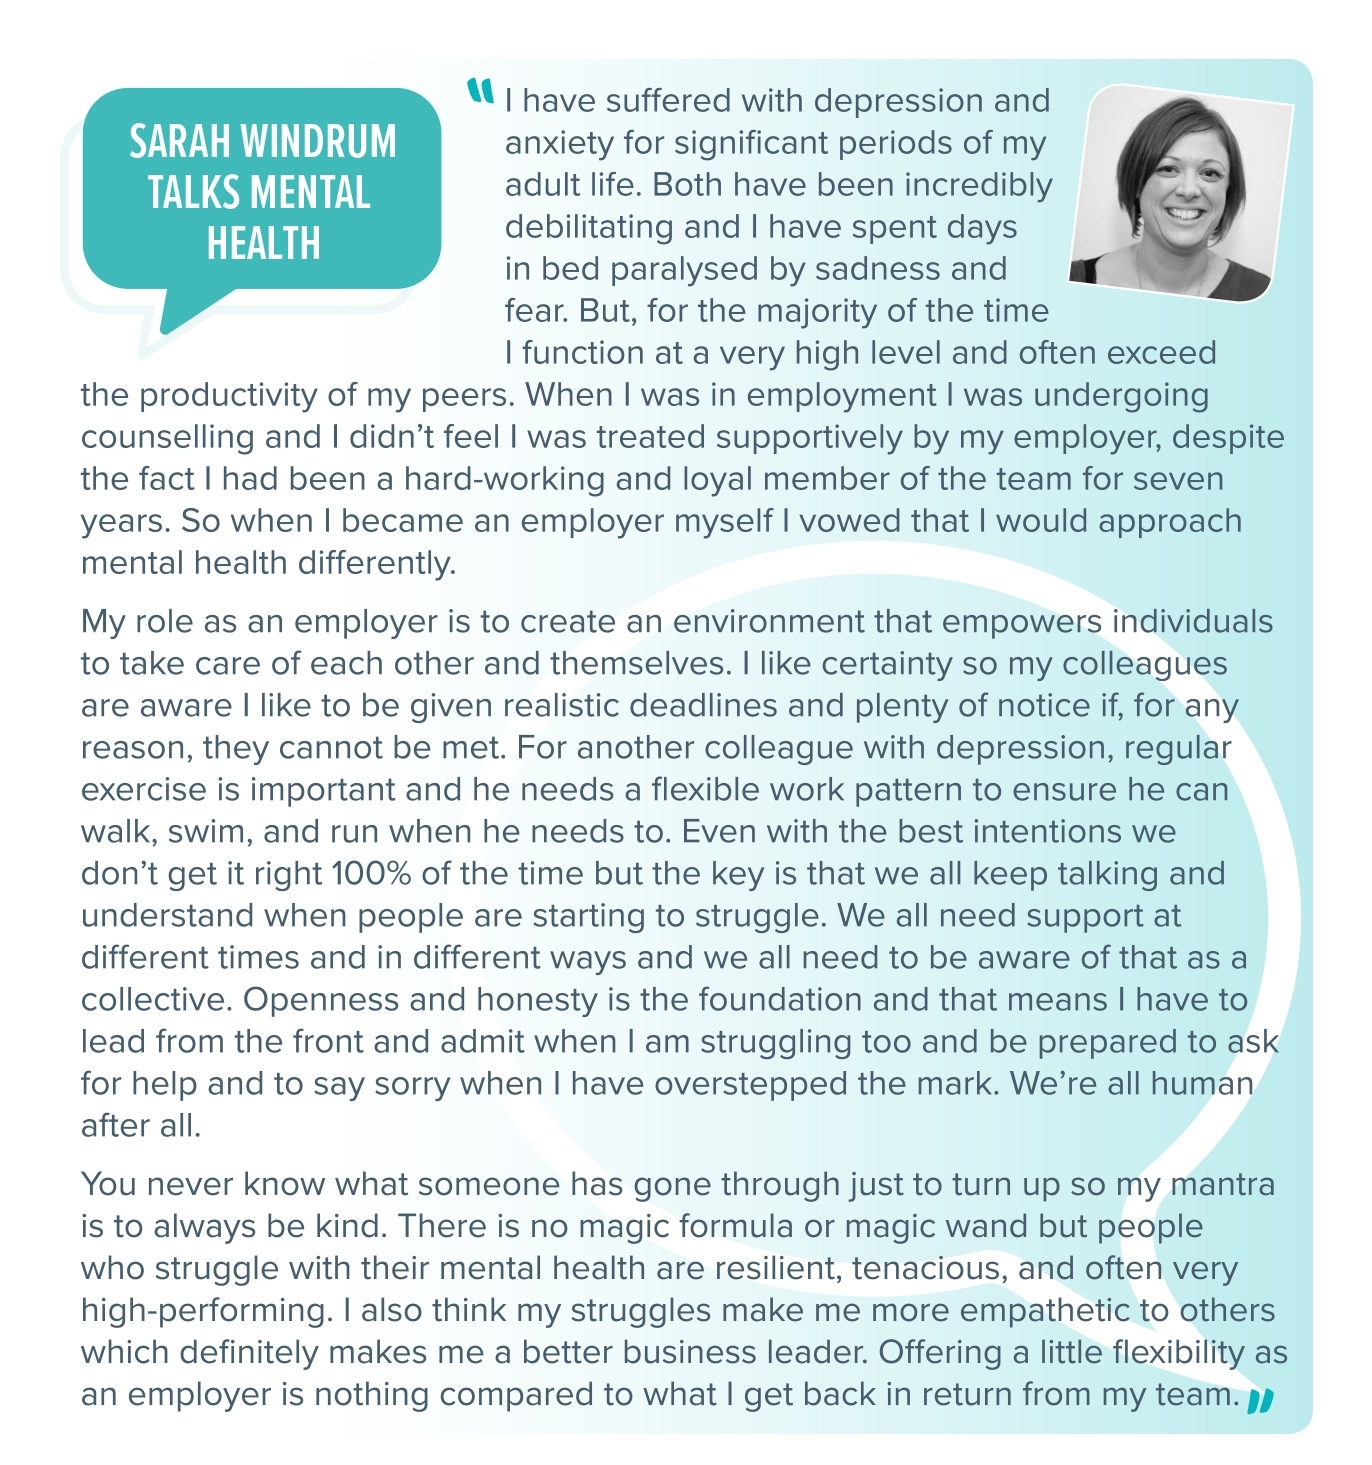 Sarah Windrum talks mental health